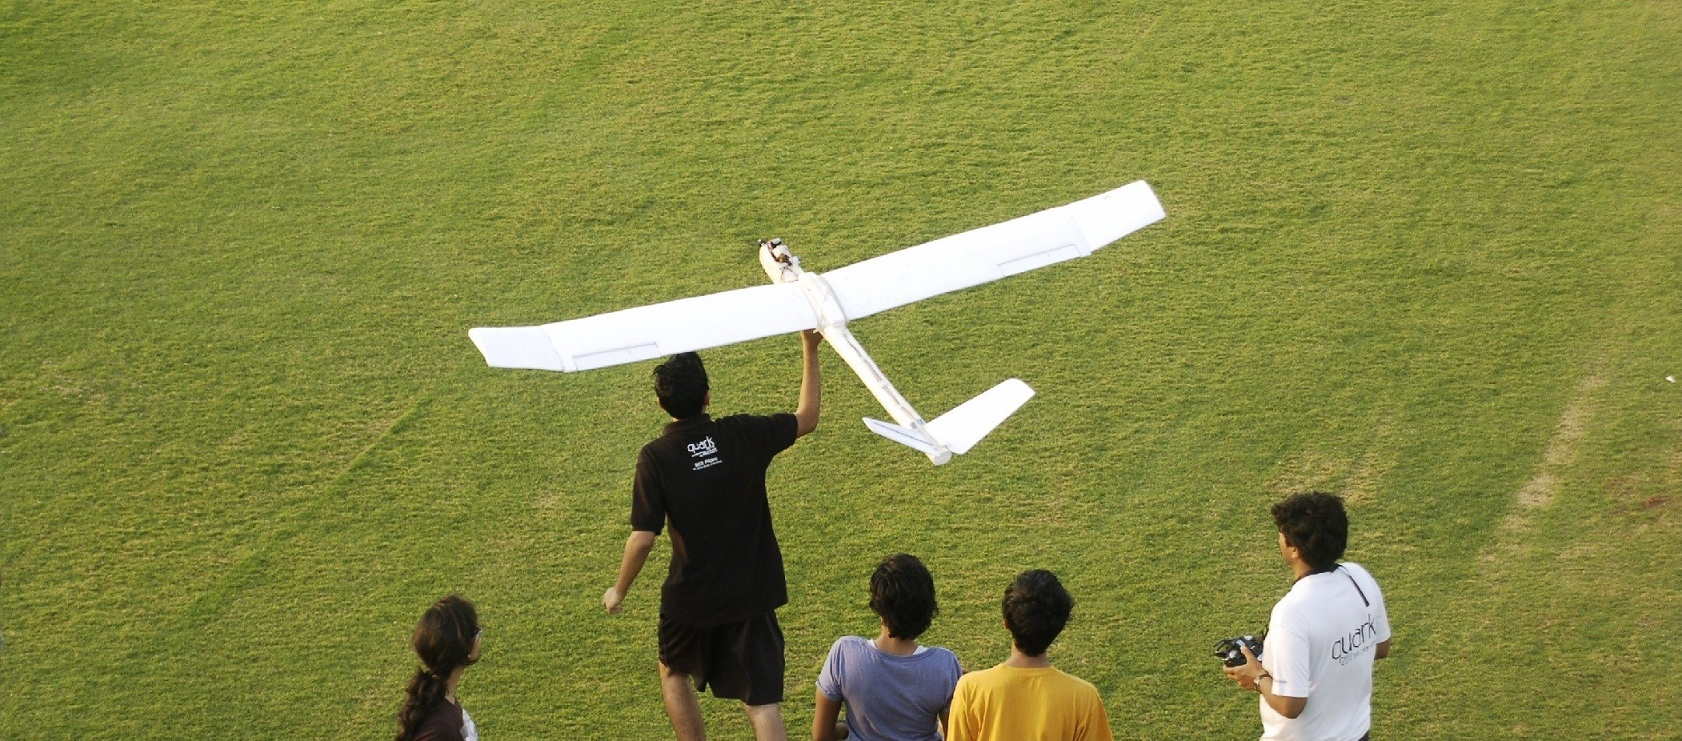 One of our longest wingspan foam aircraft